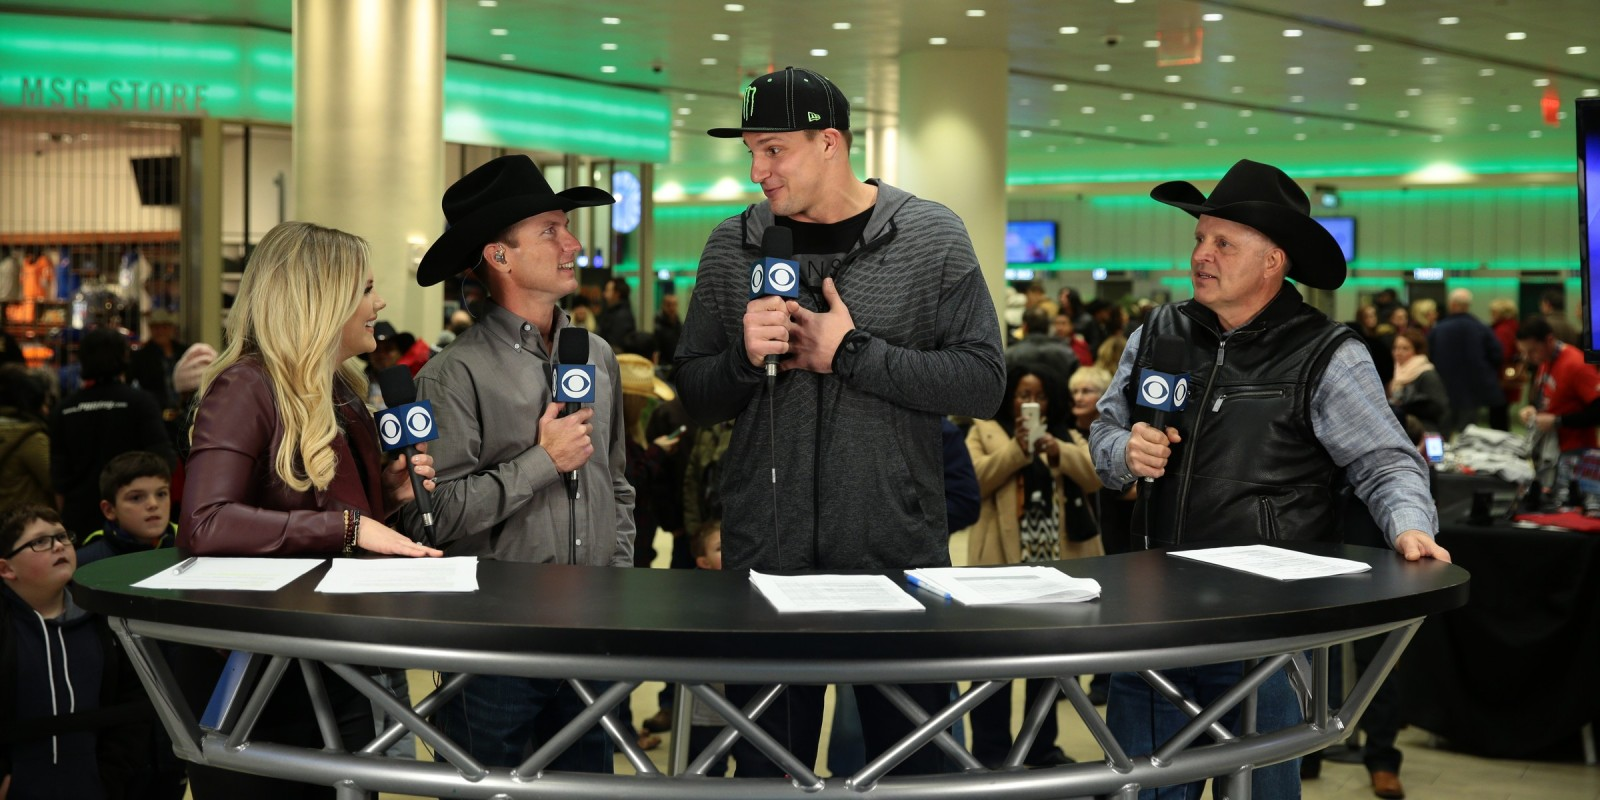 Kate Harrison, Justin McBride, Cody Lambert, Rob Gronkowski, at the CBSSN Pre-Show during the New York City Built Ford Tough series PBR